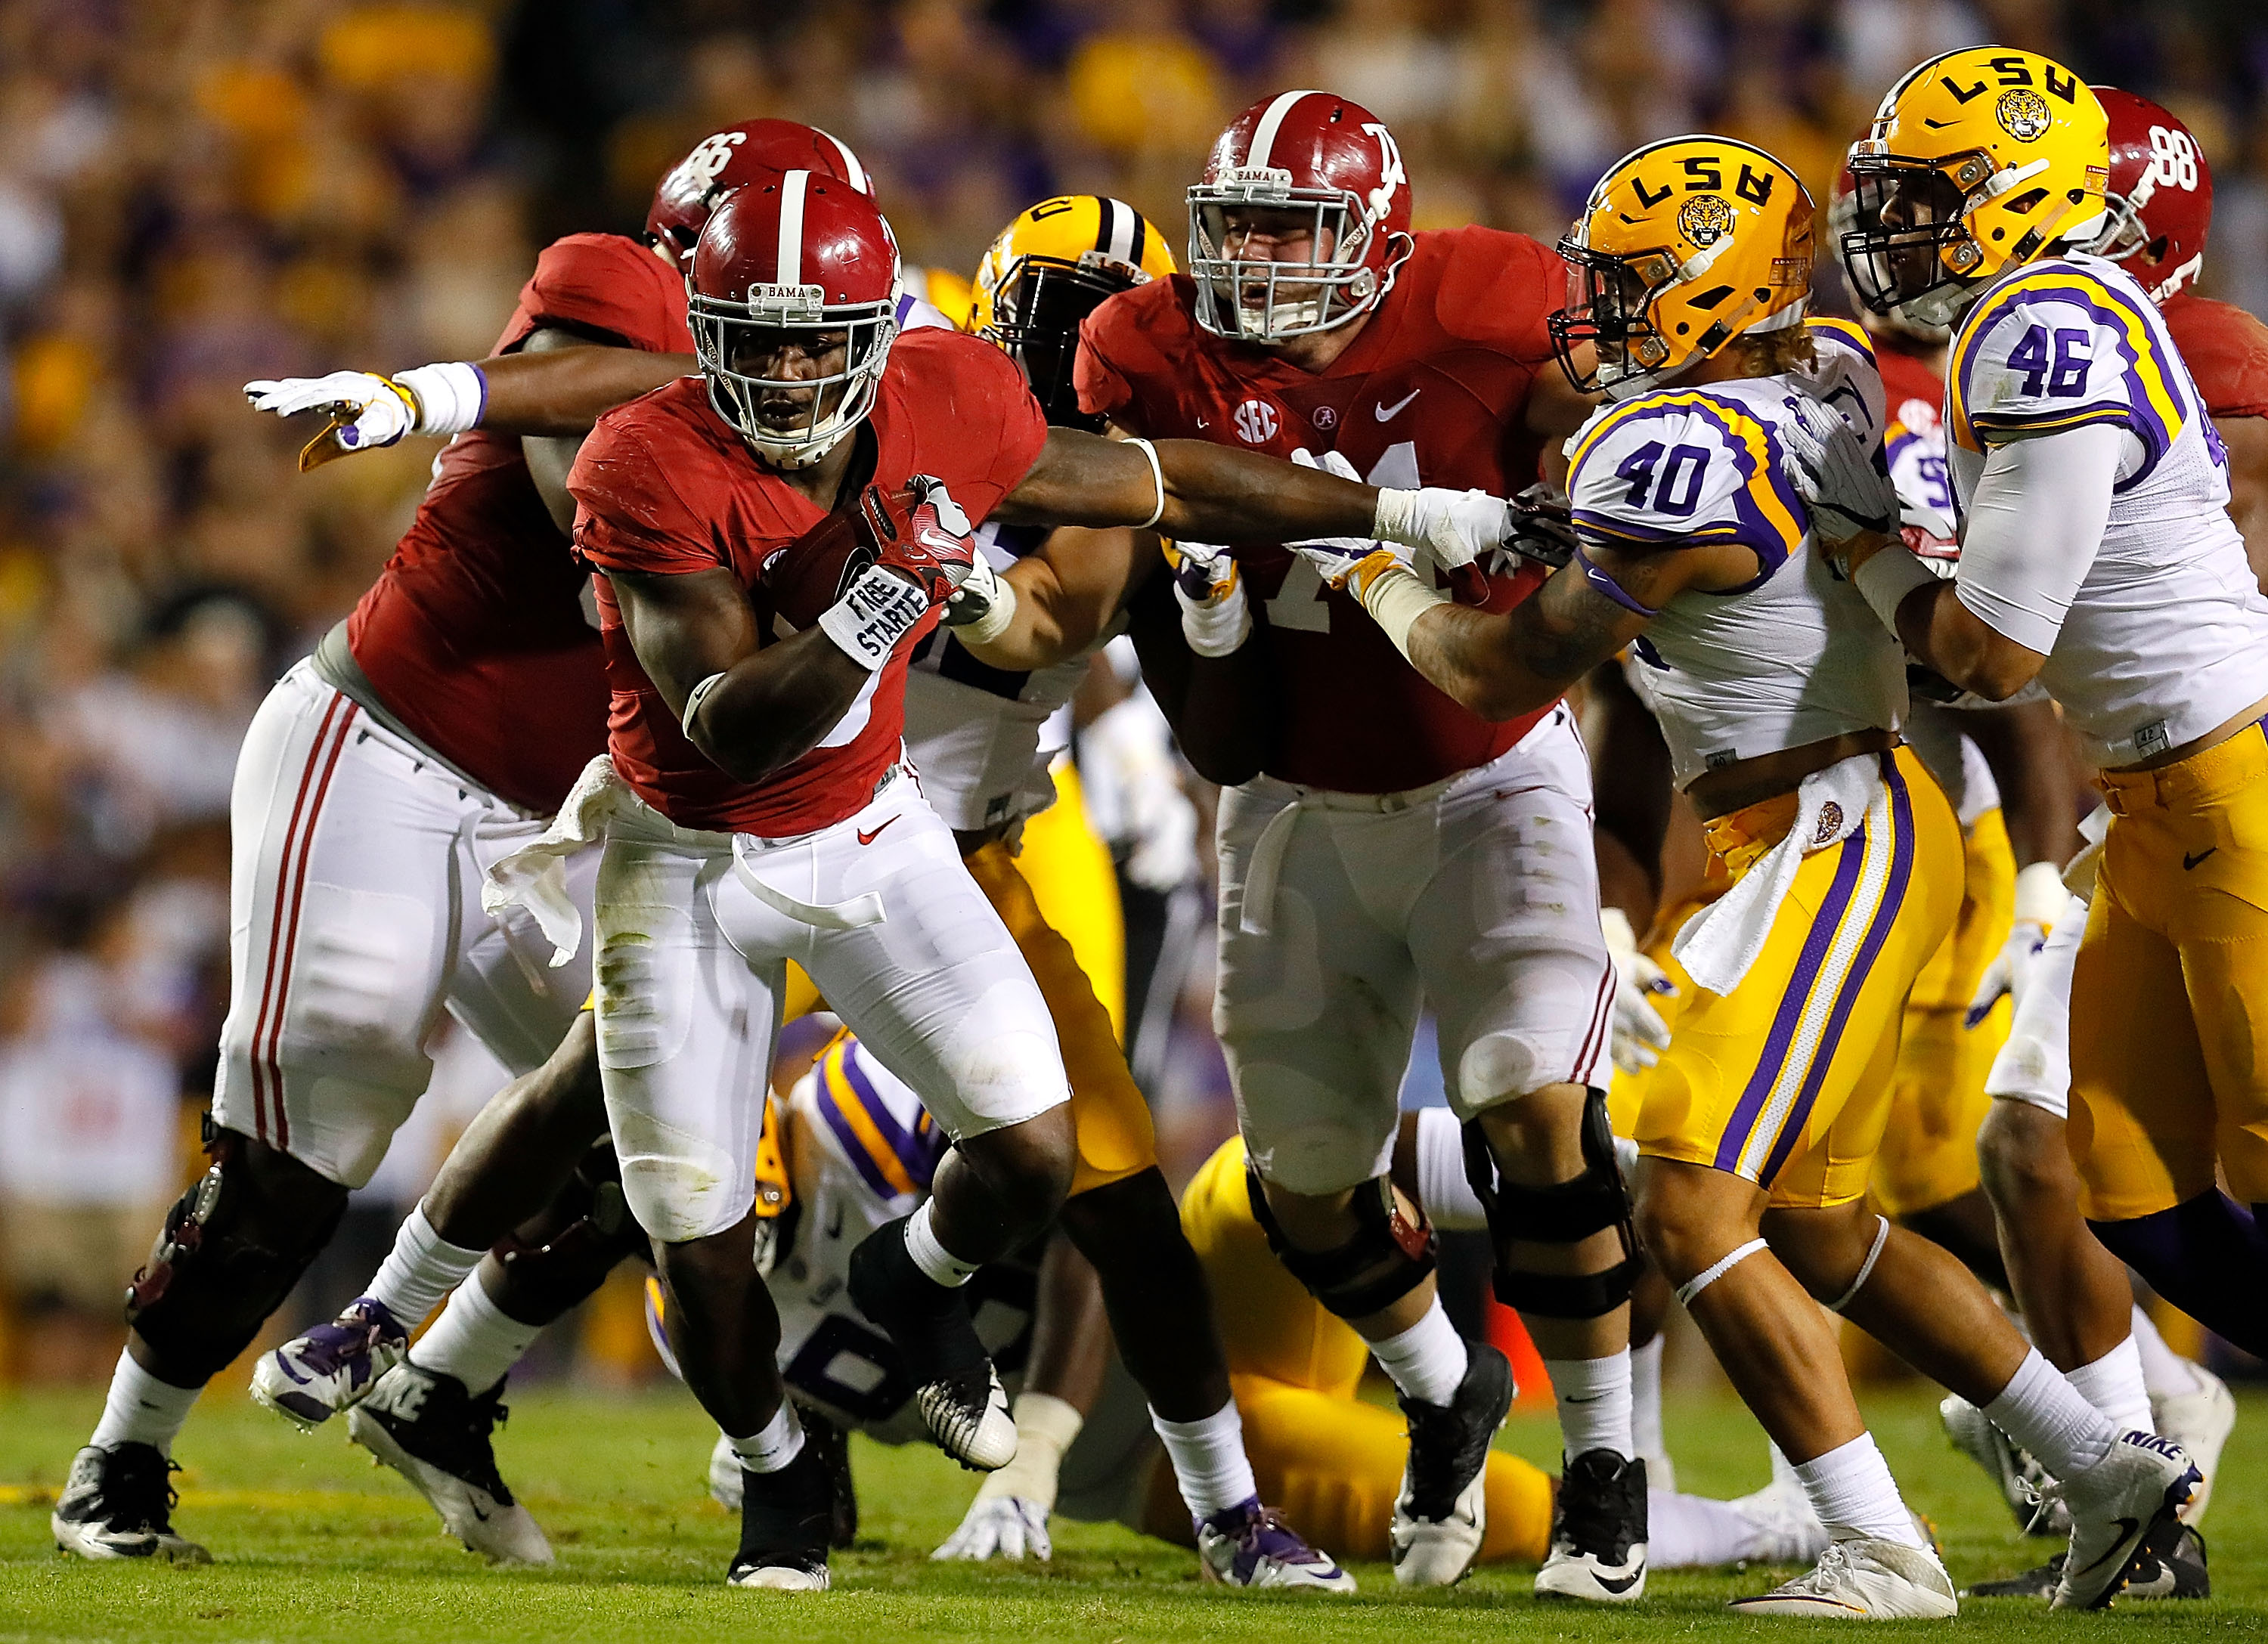 WATCH: 'Bama RB Scarbrough Muscles Way Into End Zone